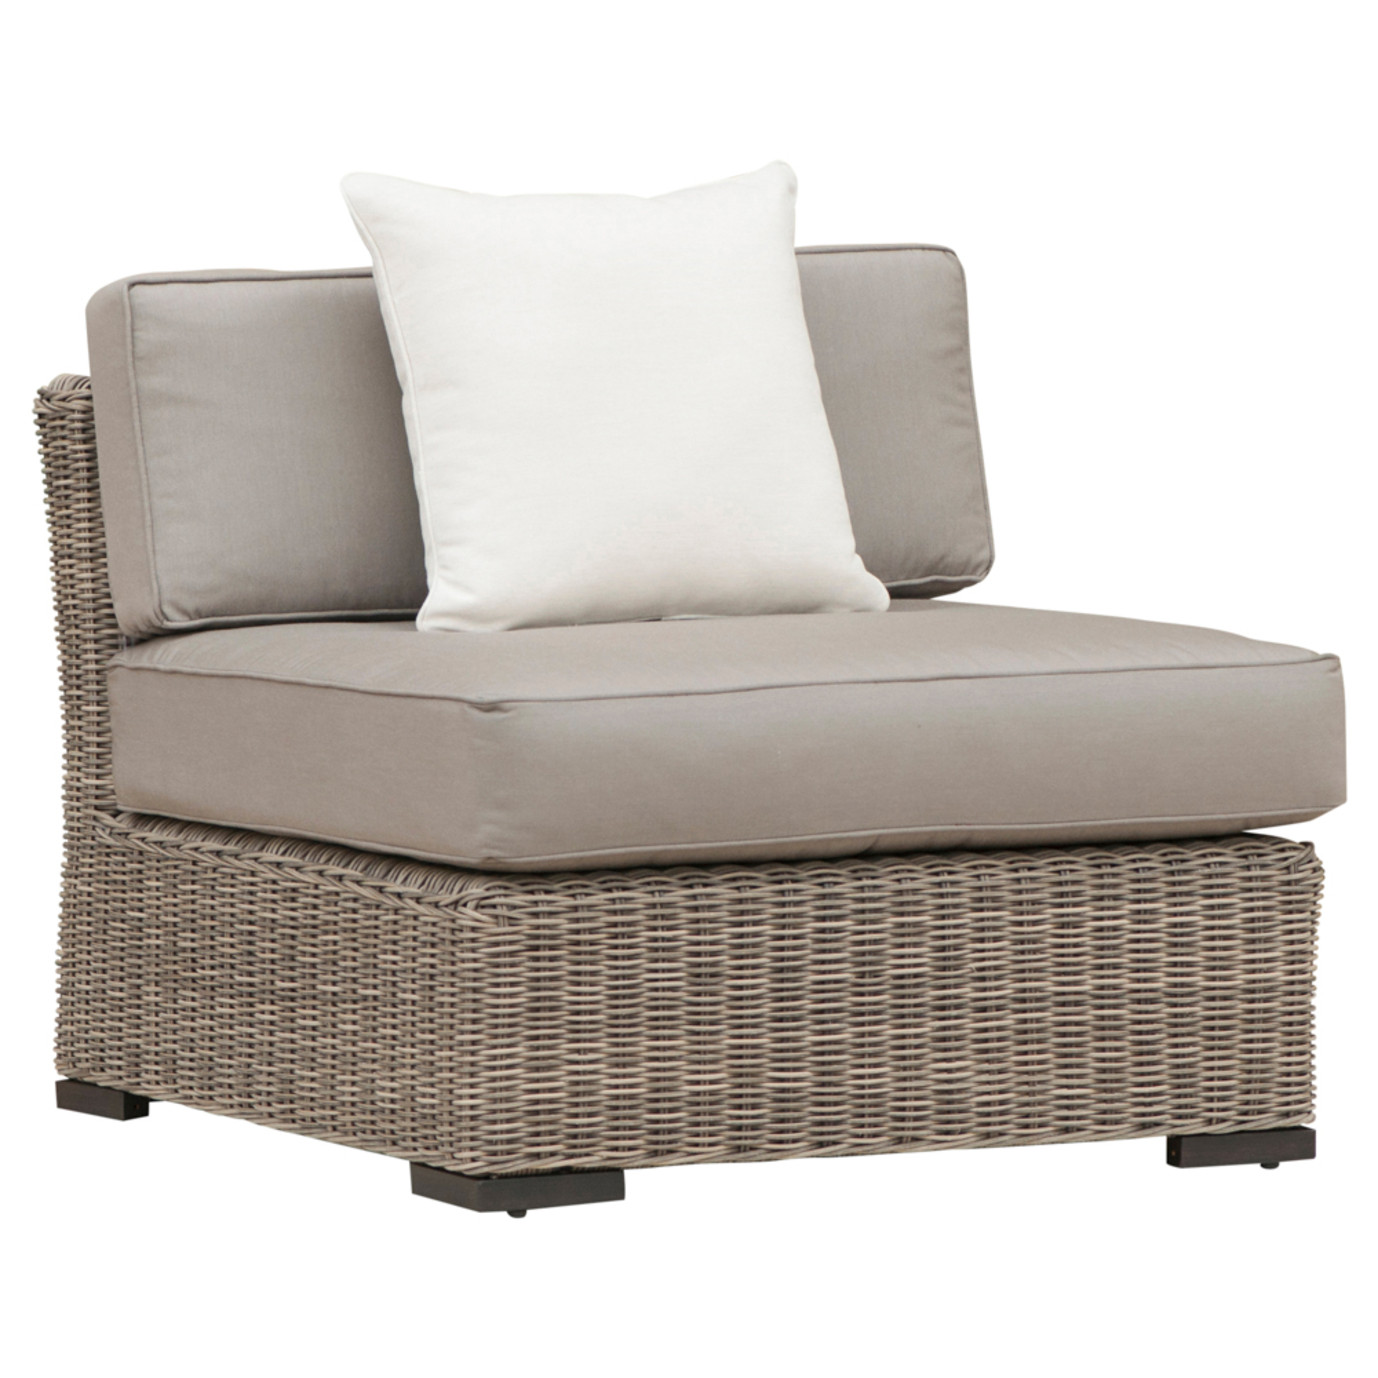 Resort Armless Chair and Large Ottoman Set - Weathered Gray